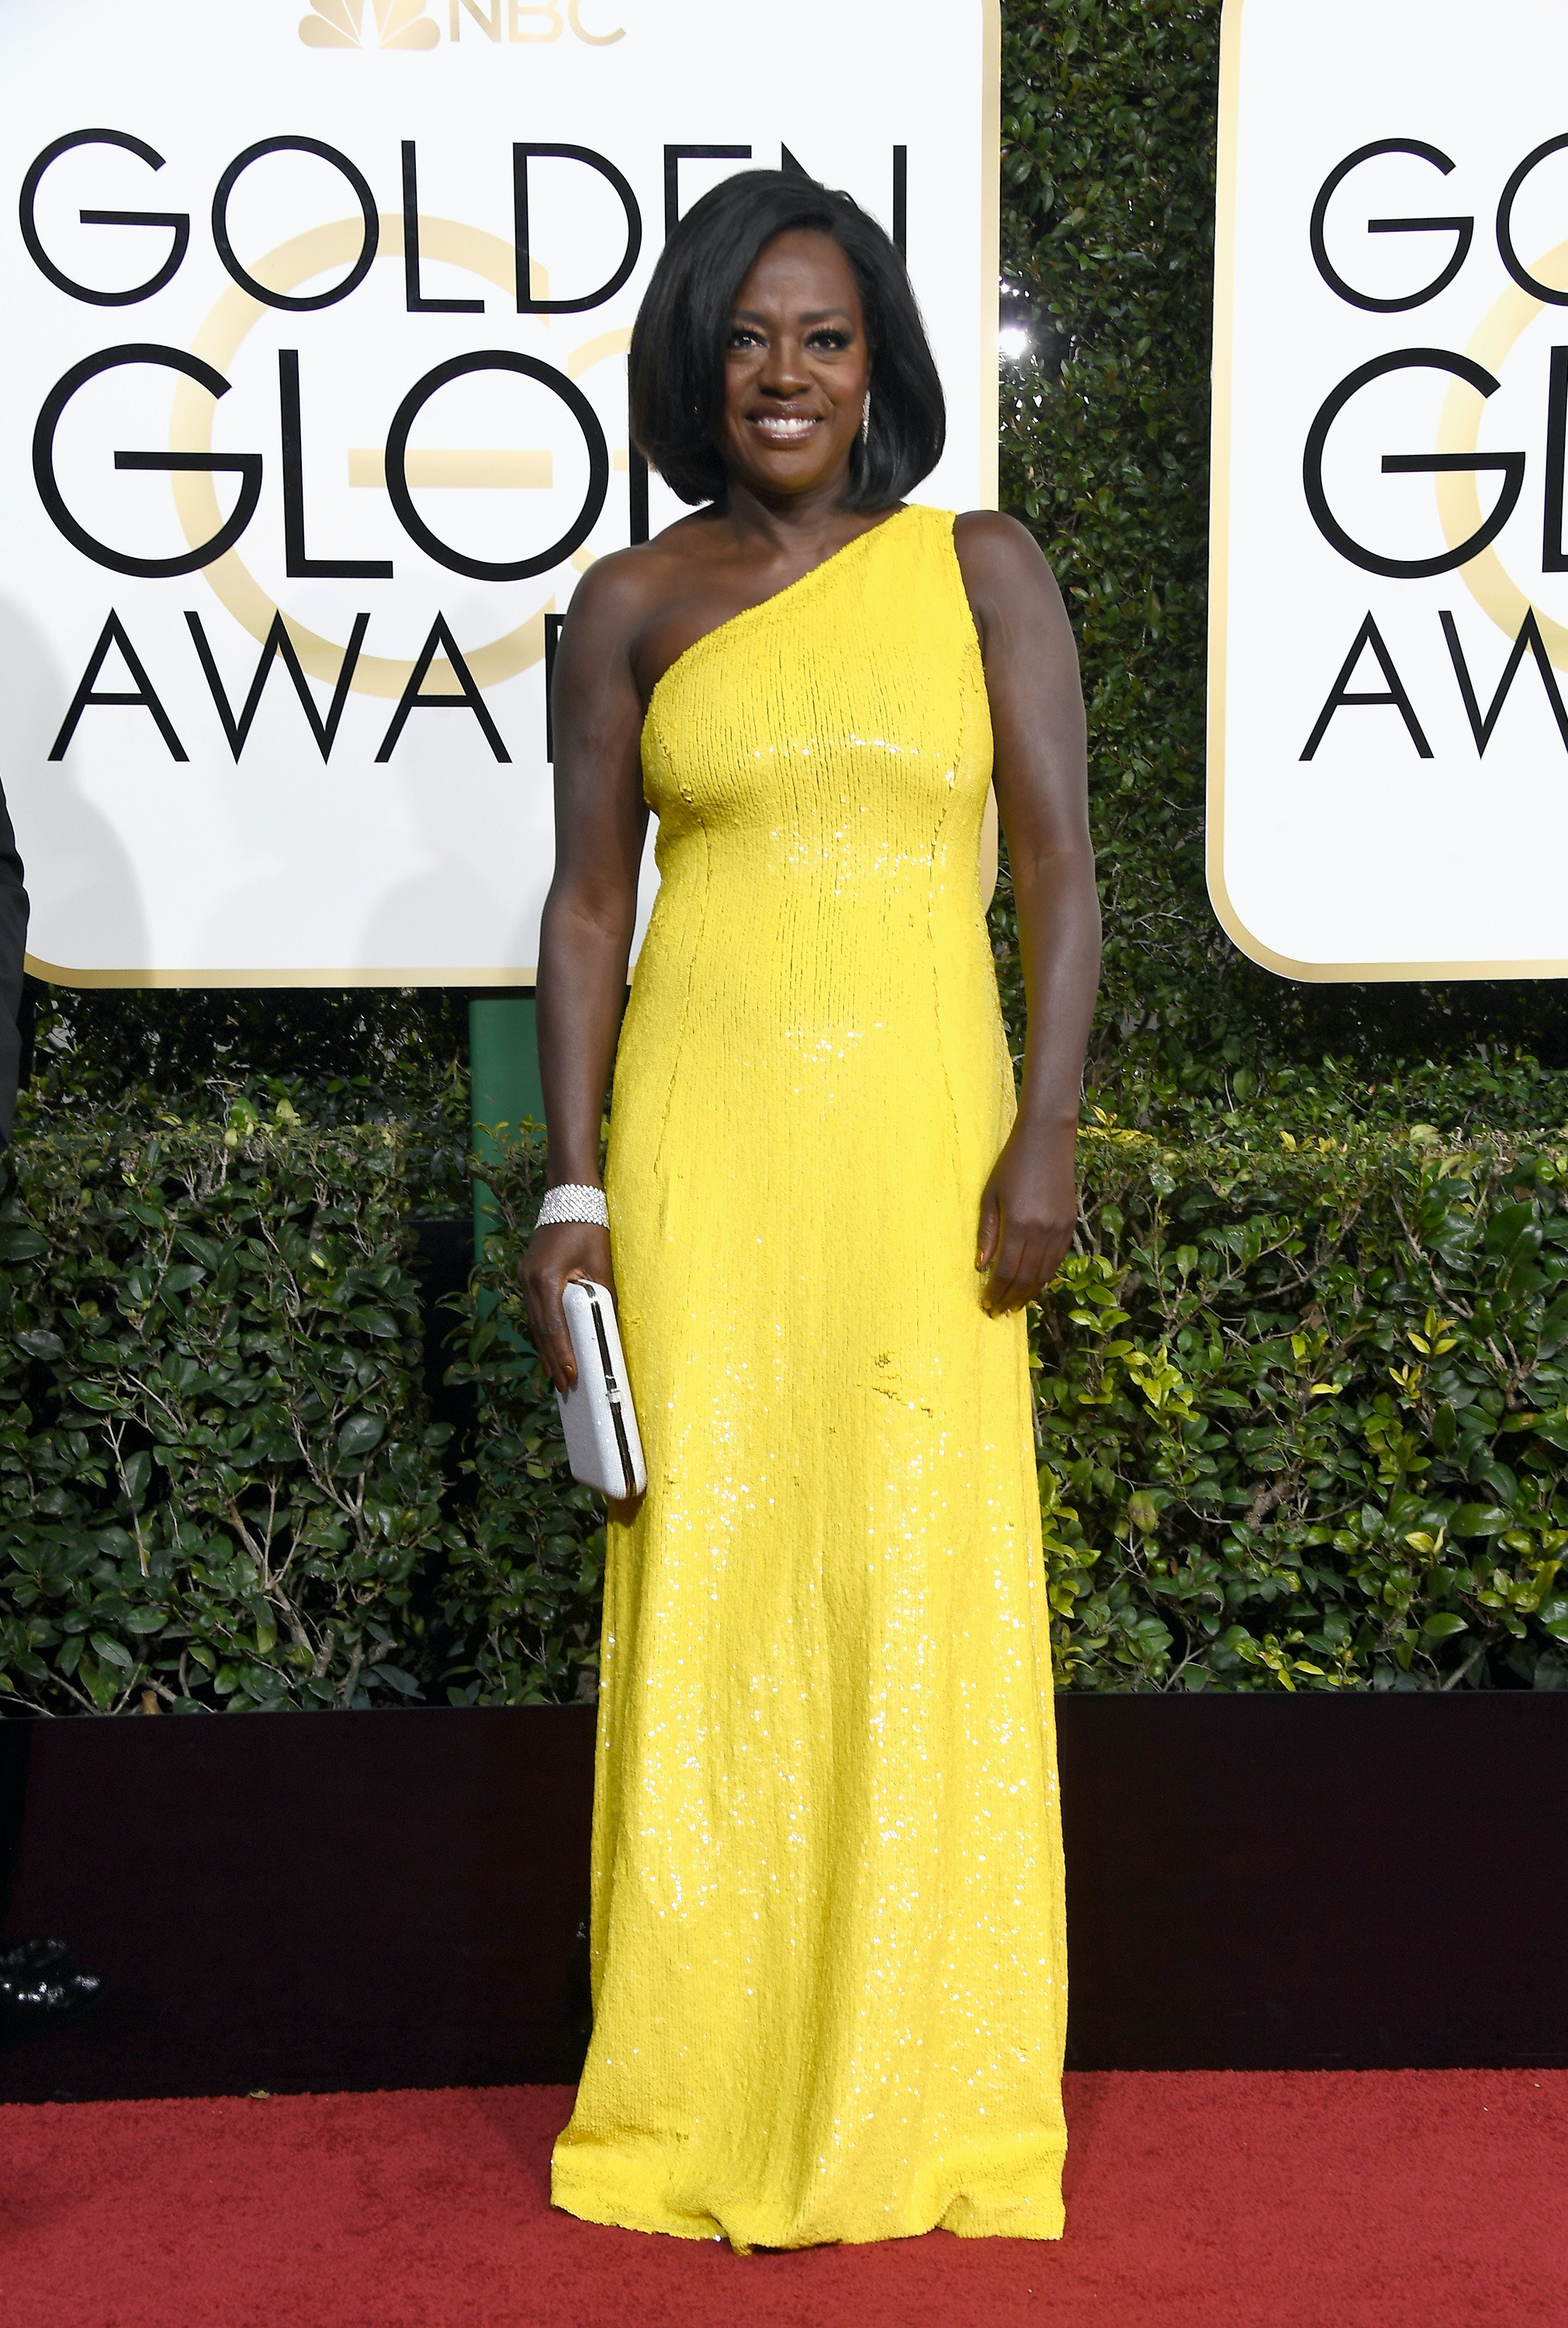 Viola Davis Dress At The 2017 Golden Globes Is Reason Color Yellow Exists Photos